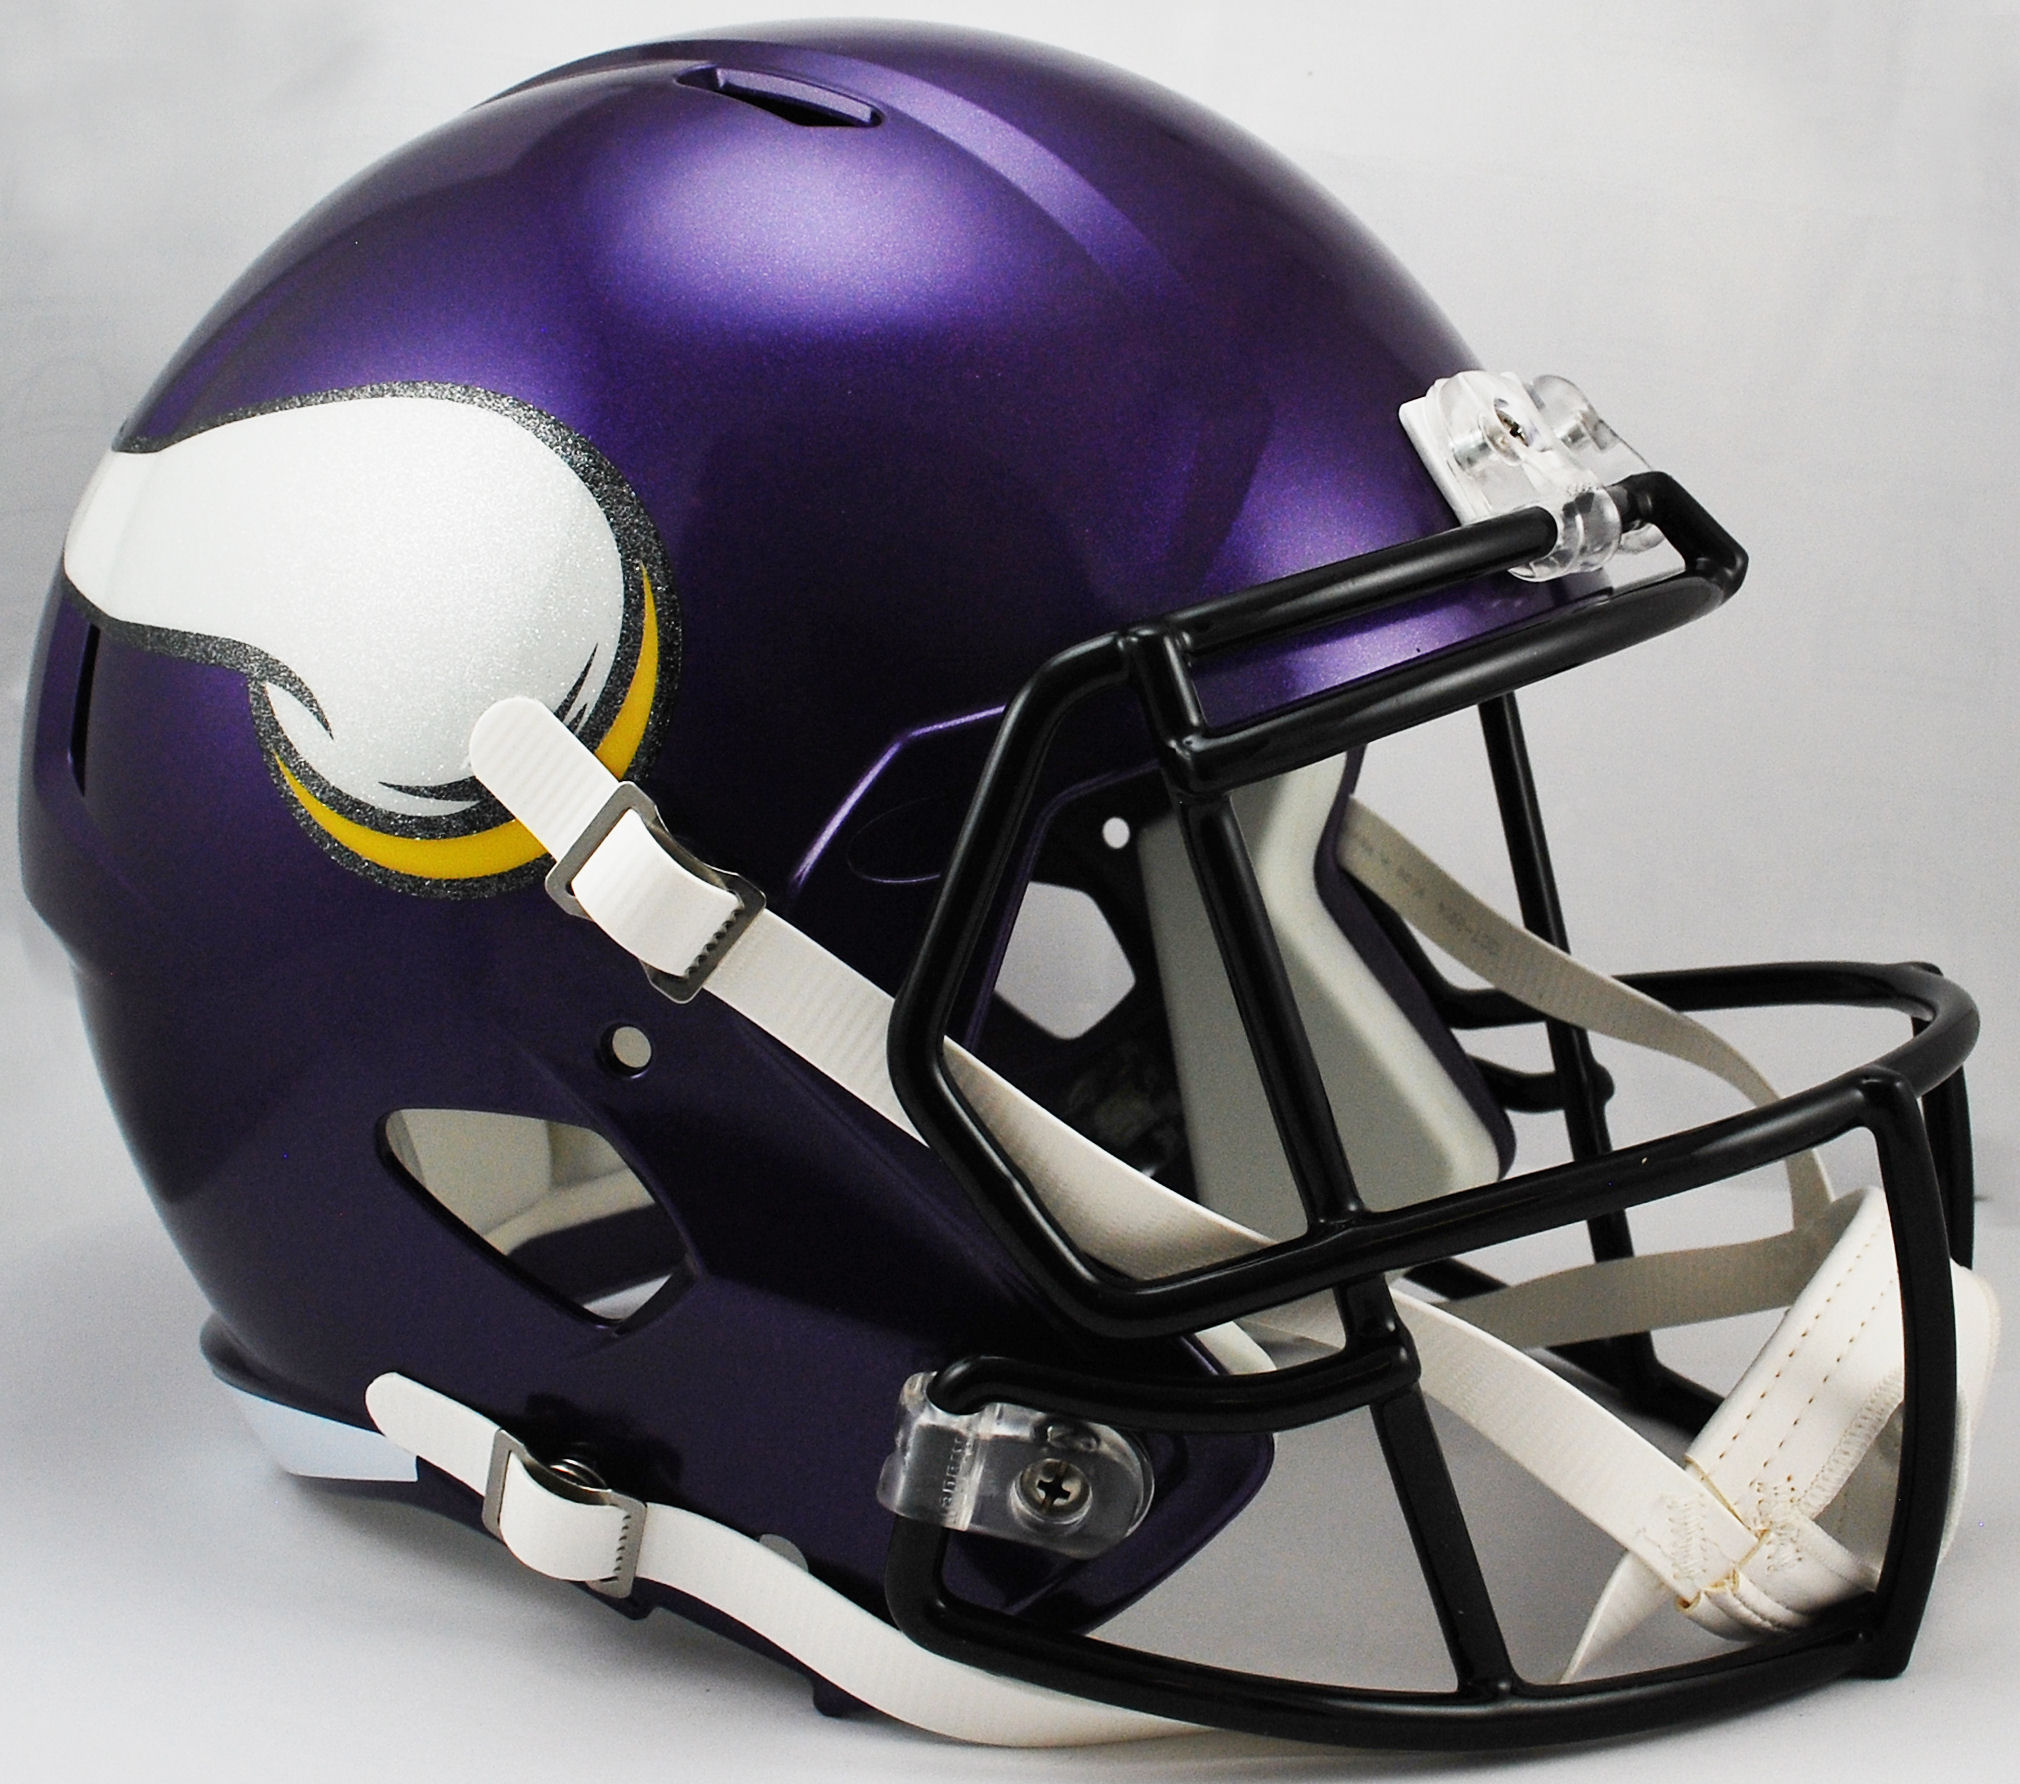 Minnesota Vikings Speed Replica Football Helmet <B>Satin Purple</B>